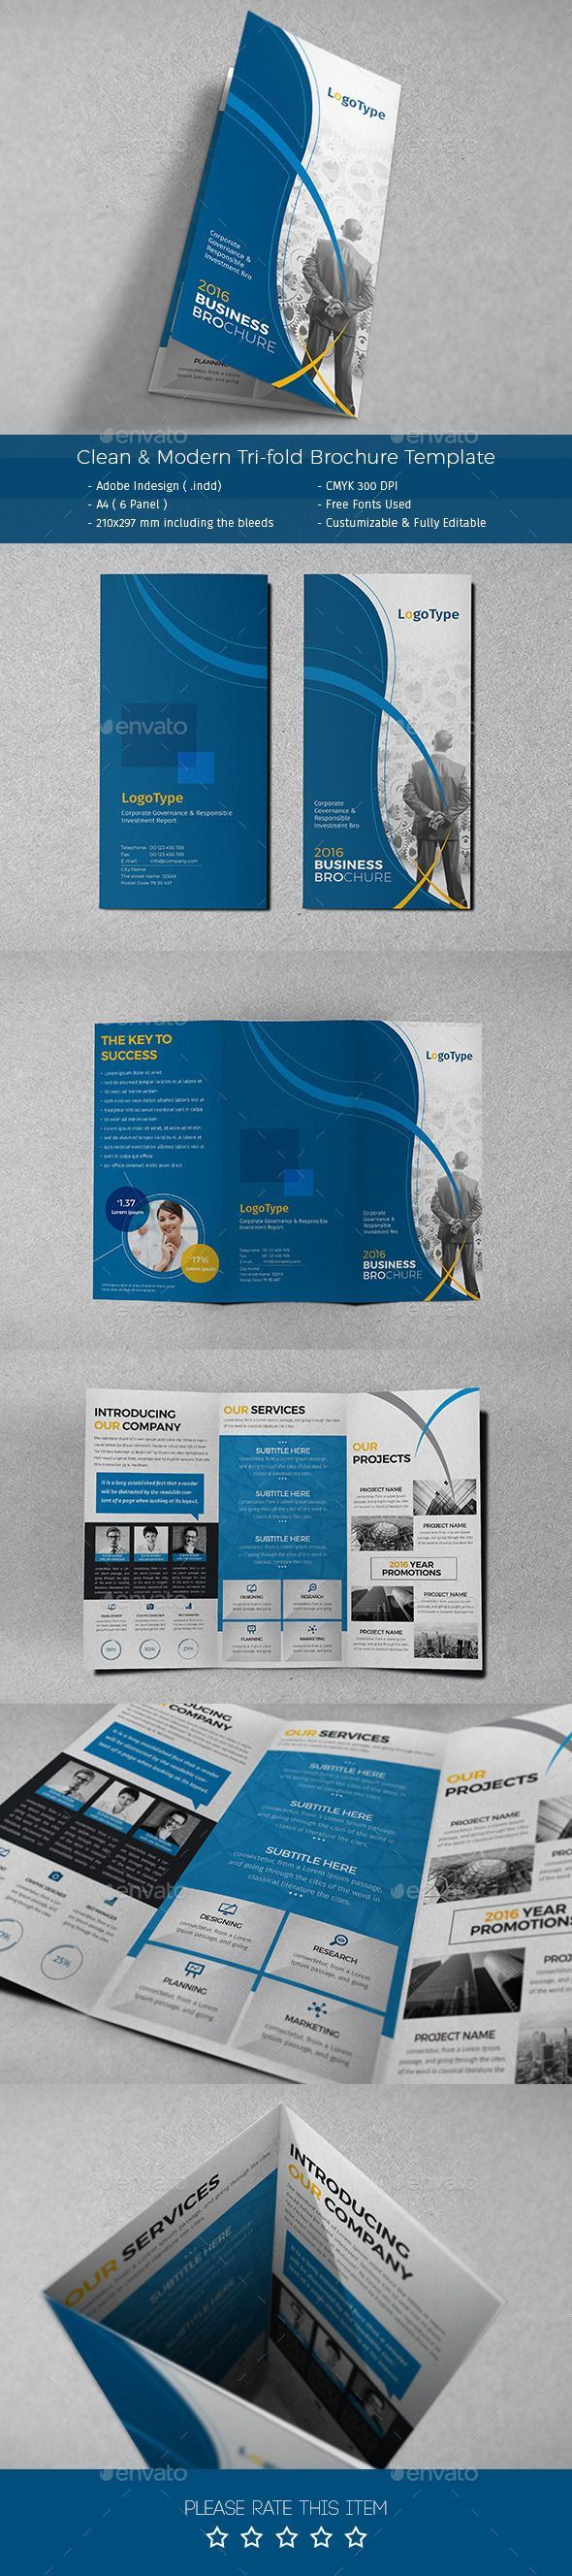 Clean & Modern Tri-fold Brochure Template #design Download: http://graphicriver.net/item/clean-modern-trifold-brochure-template/12323530?ref=ksioks